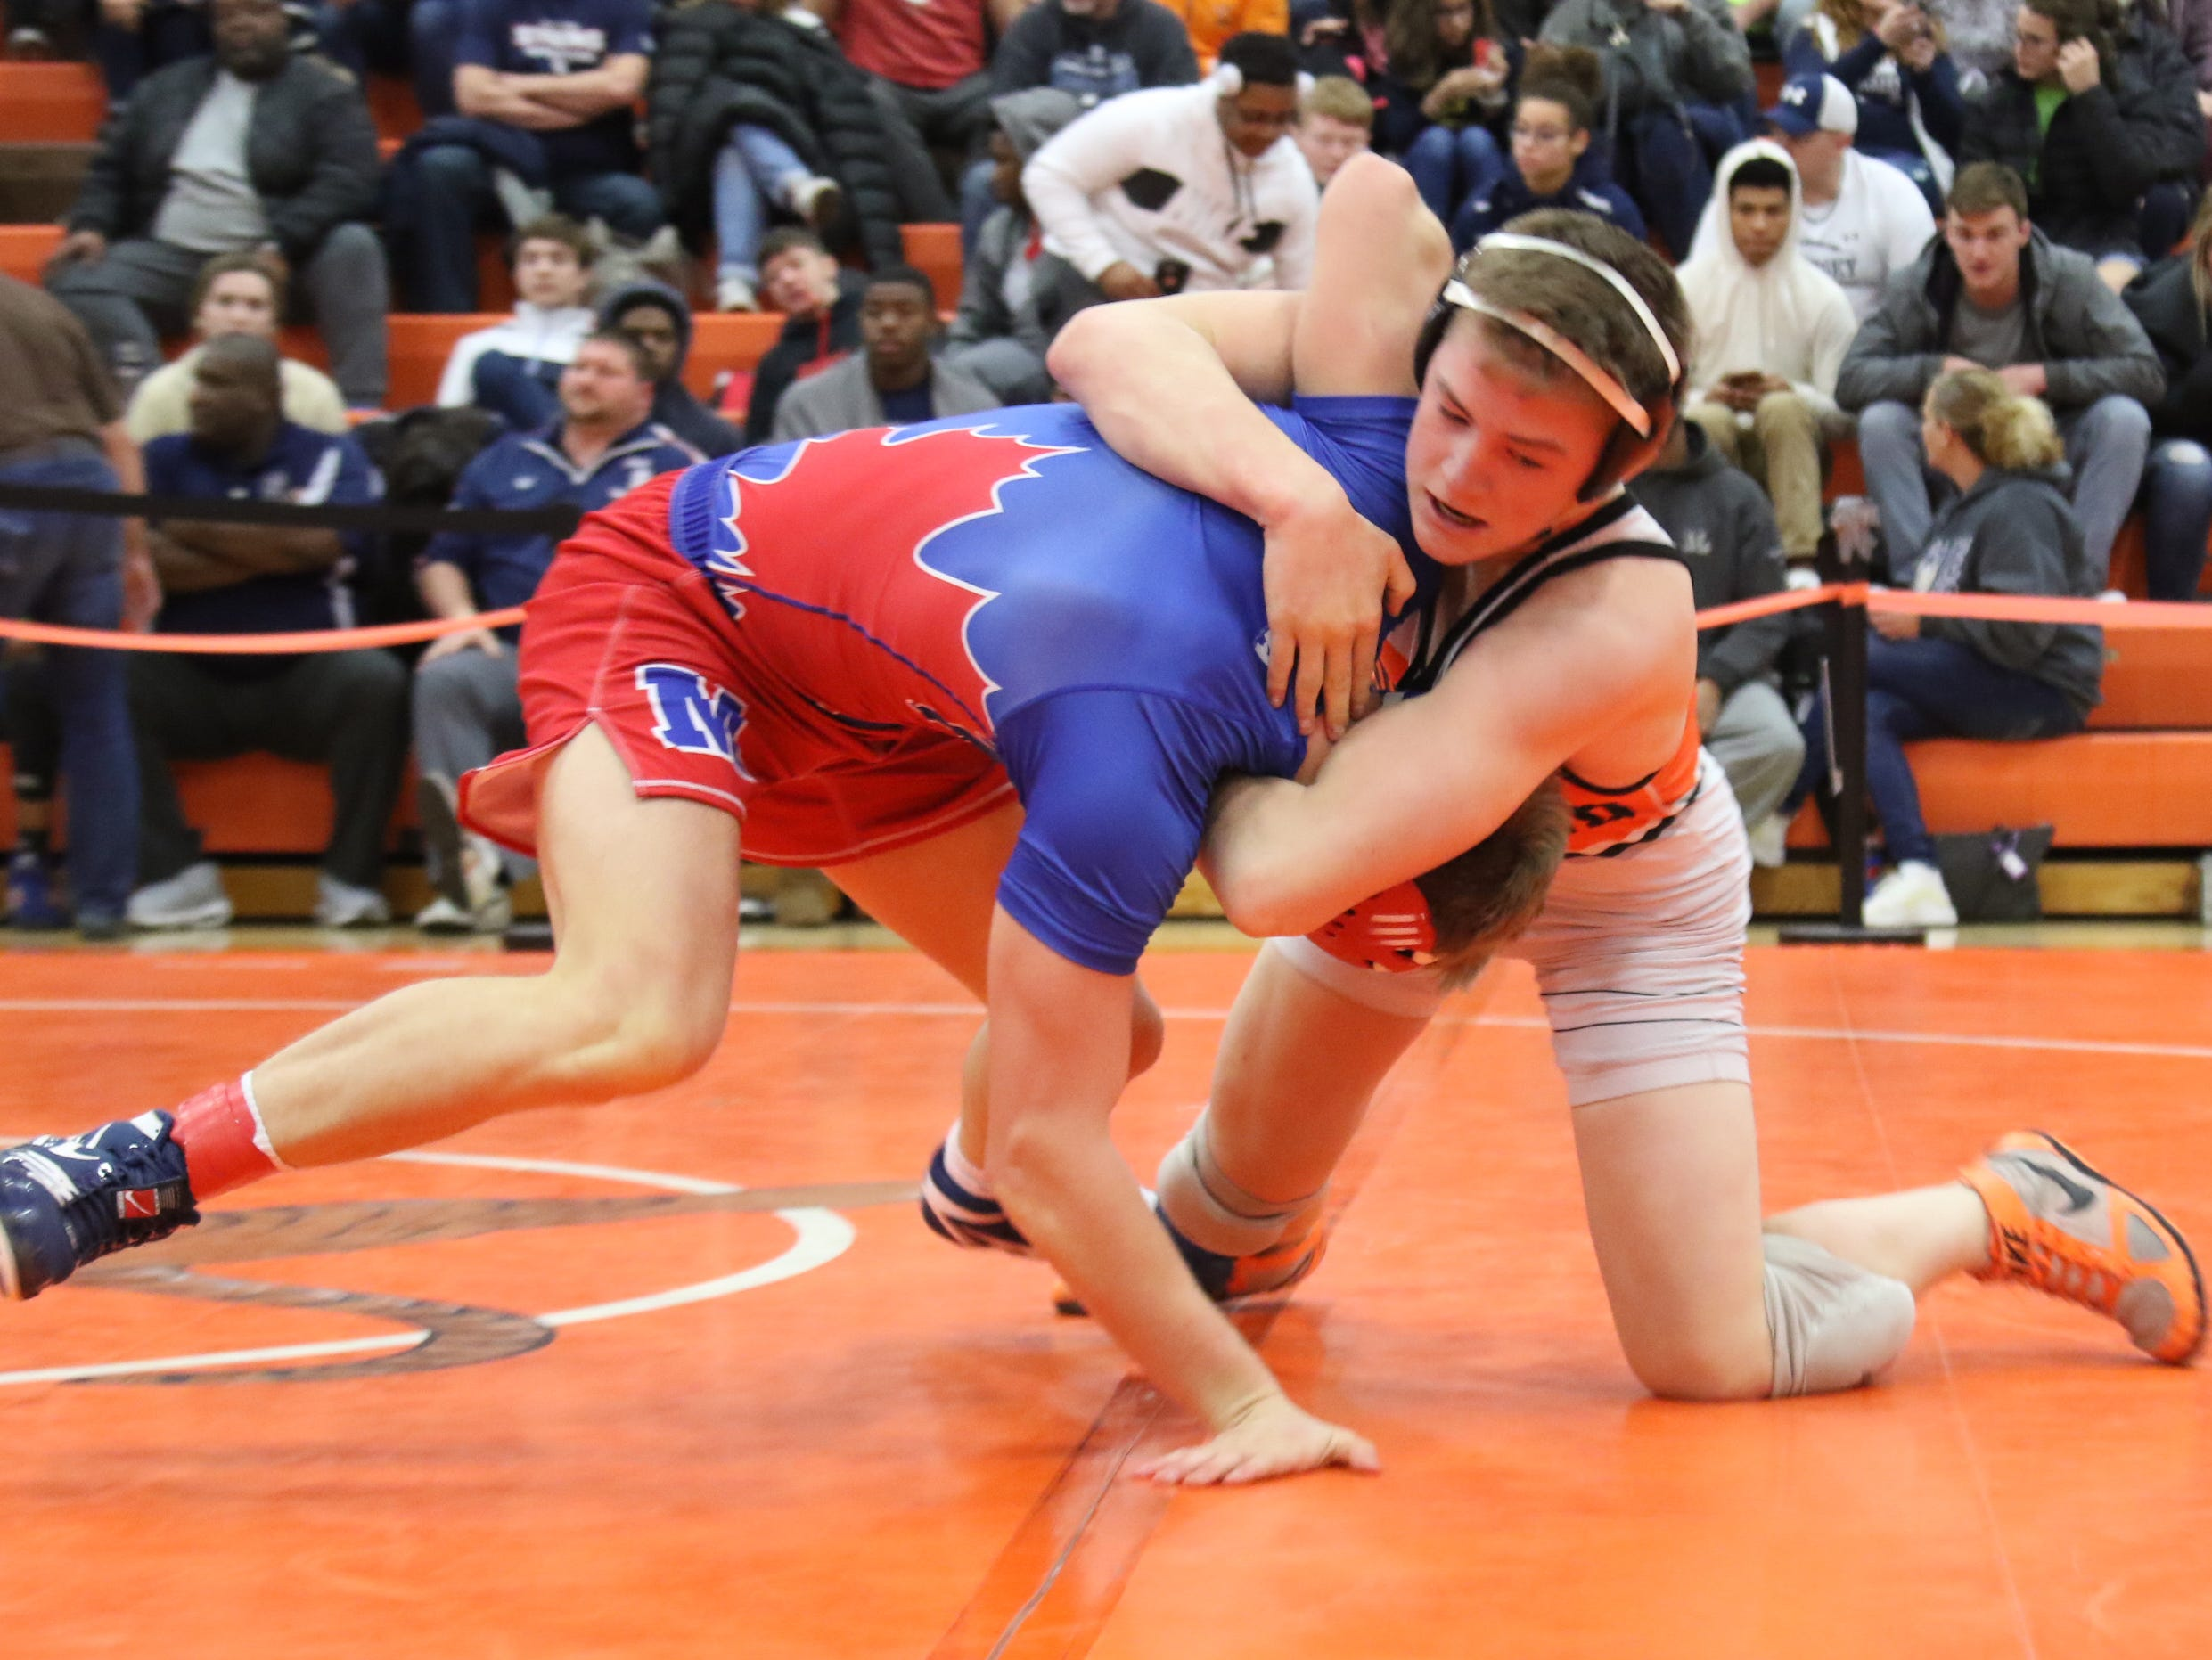 Ashland's Austin McNamara spars with Mapleton's Beau Lefever during the final matches at the JC Gorman Wrestling Tournament on Saturday.